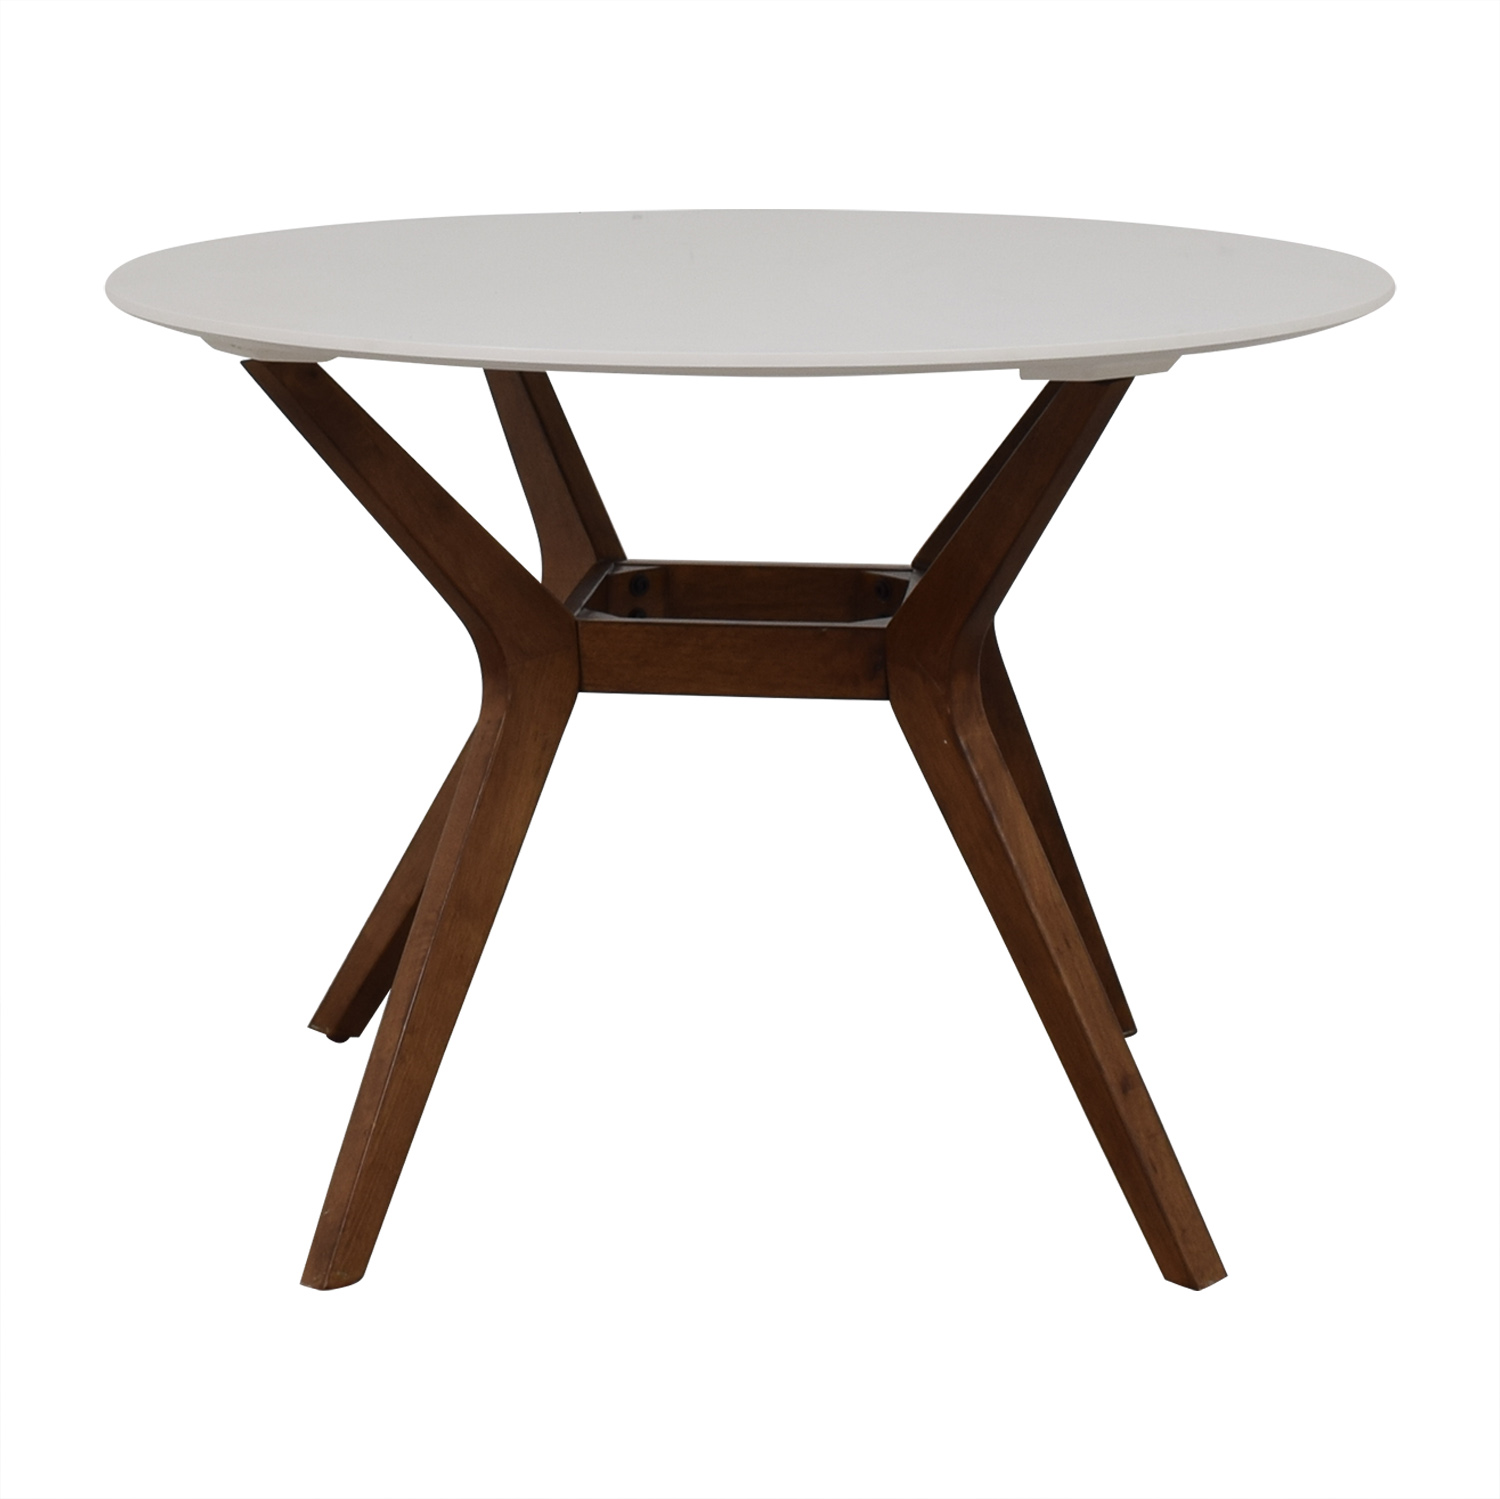 41% OFF - Project 62 Project 62 by Target White Wooden ...